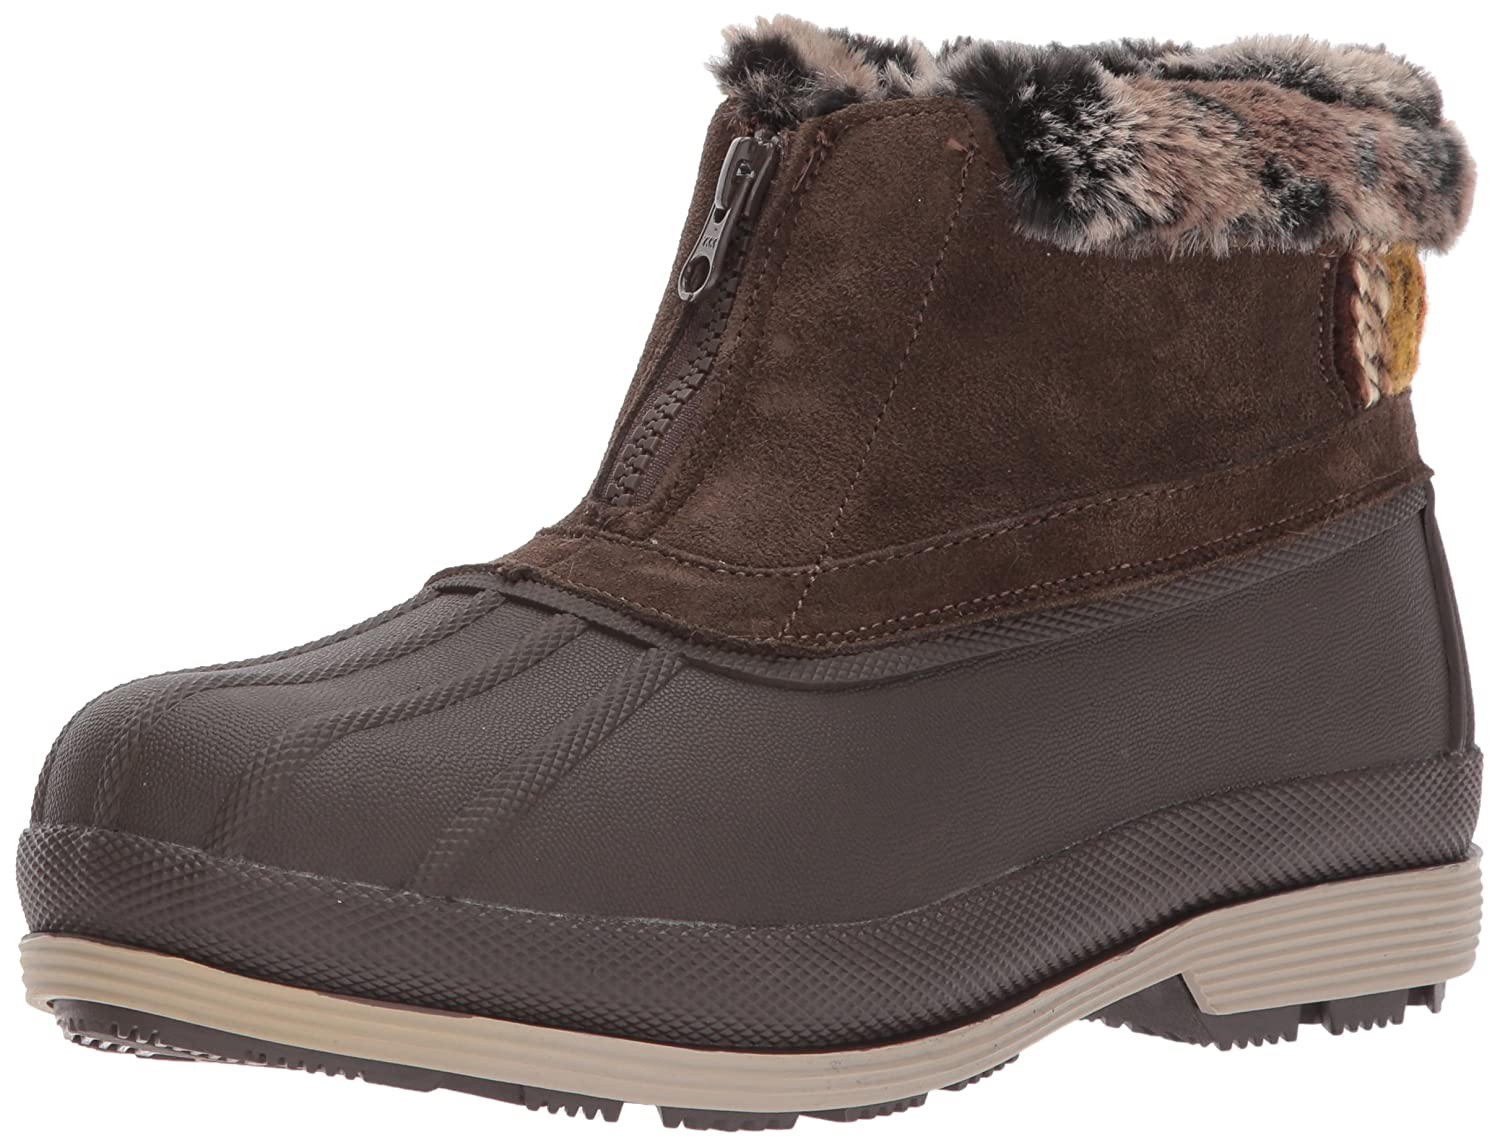 Propet Women's Lumi Ankle Zip 4E Snow Boot B01MS7G4RA 9 4E Zip US|Brown 9ea6d8